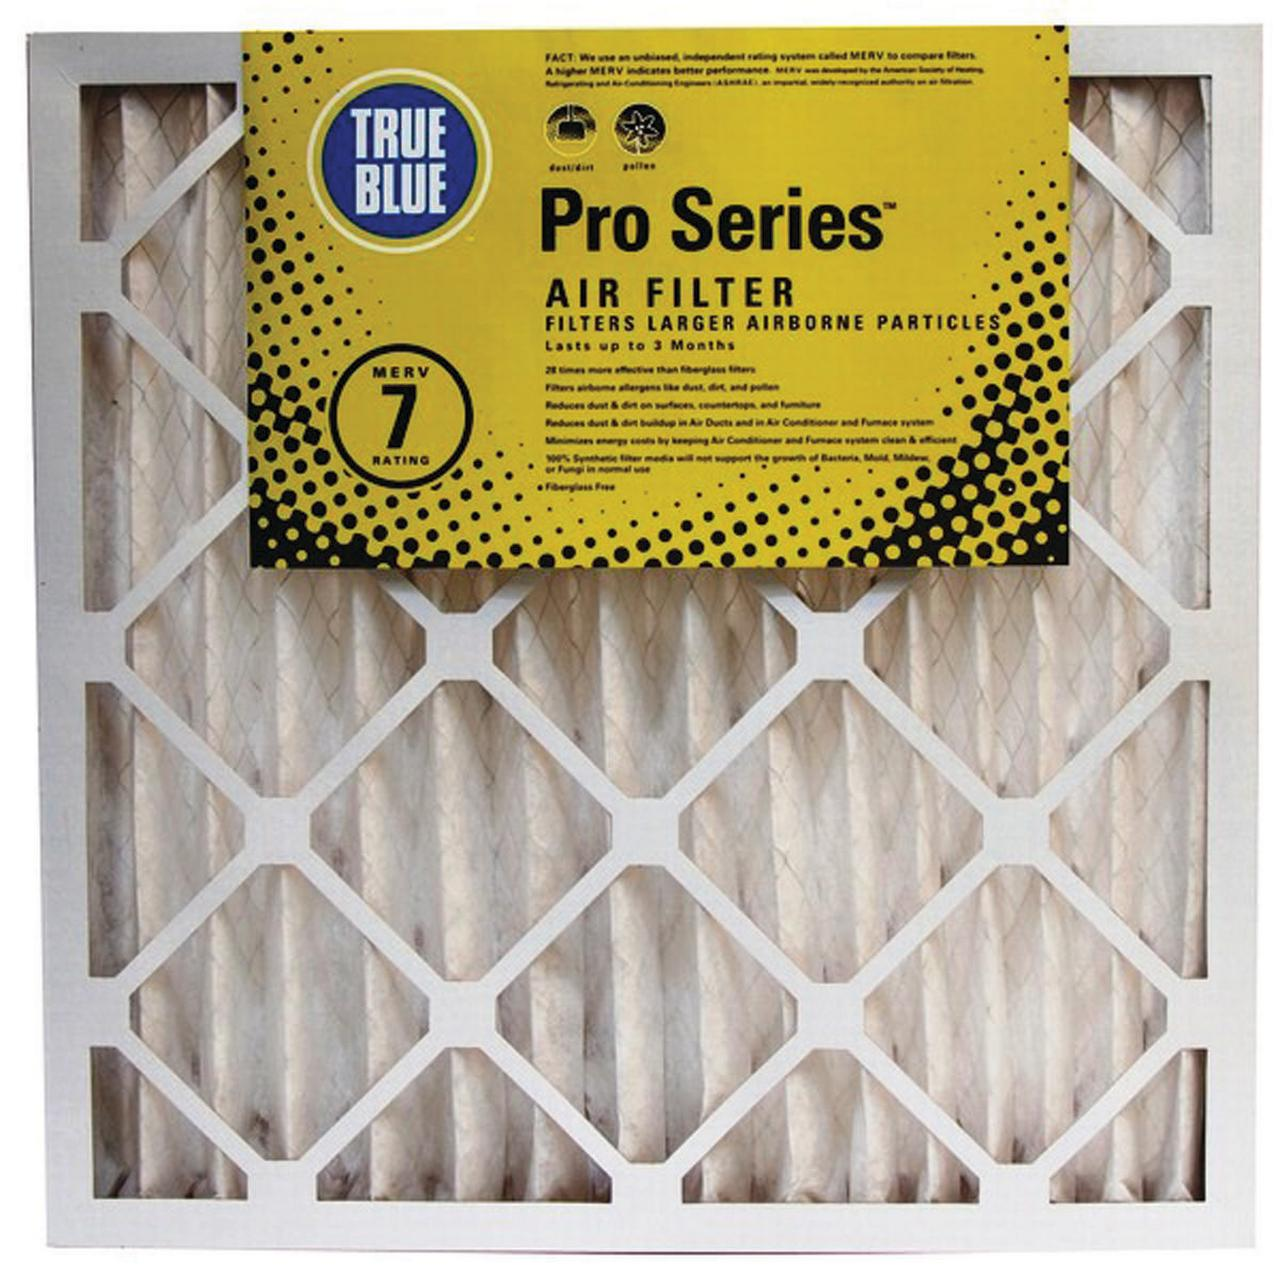 True Blue 220254 Pleated Air Filter, 20 in L x 25 in W x 4 in T